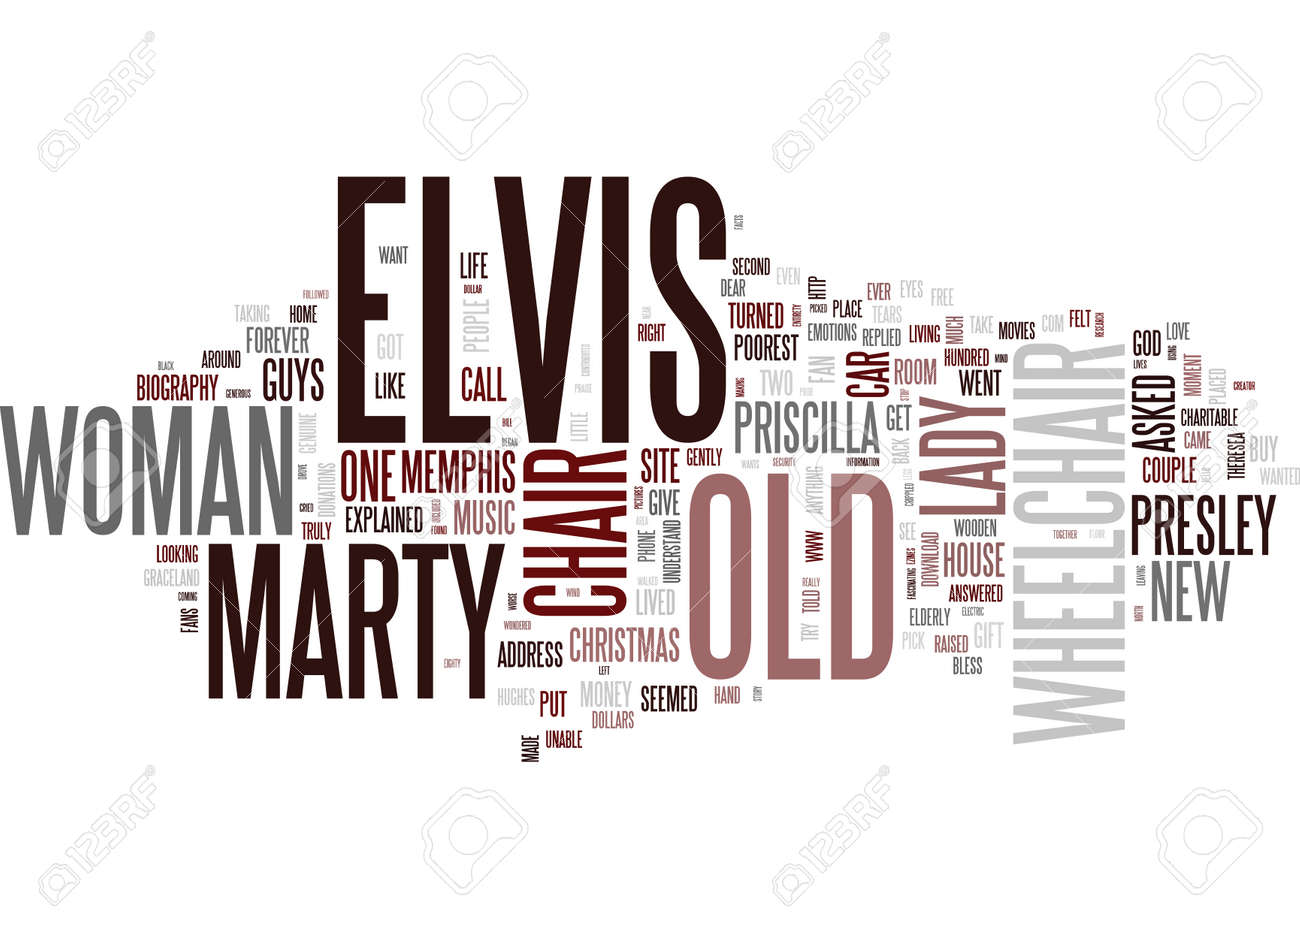 ELVIS ON MY MIND FREE AUTOBIOGRAPHY BOOK DOWNLOAD Text Background